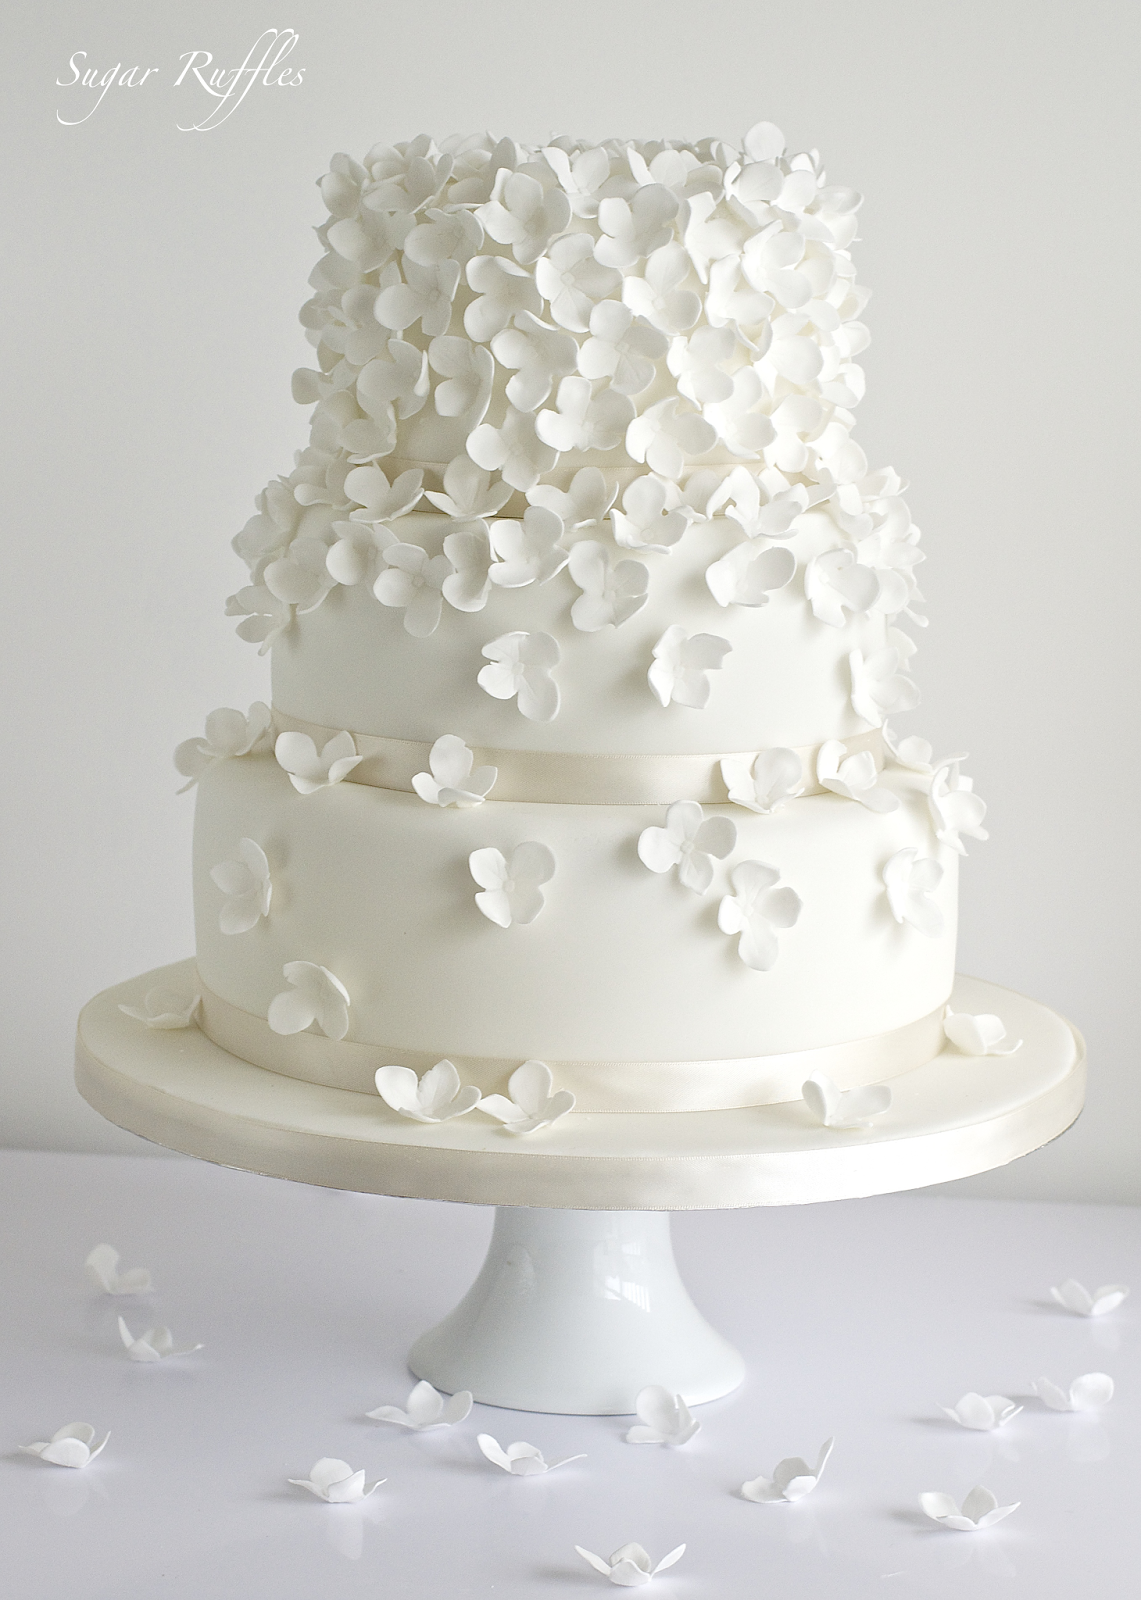 elegant wedding cakes with flowers sugar ruffles wedding cakes barrow in furness 13987